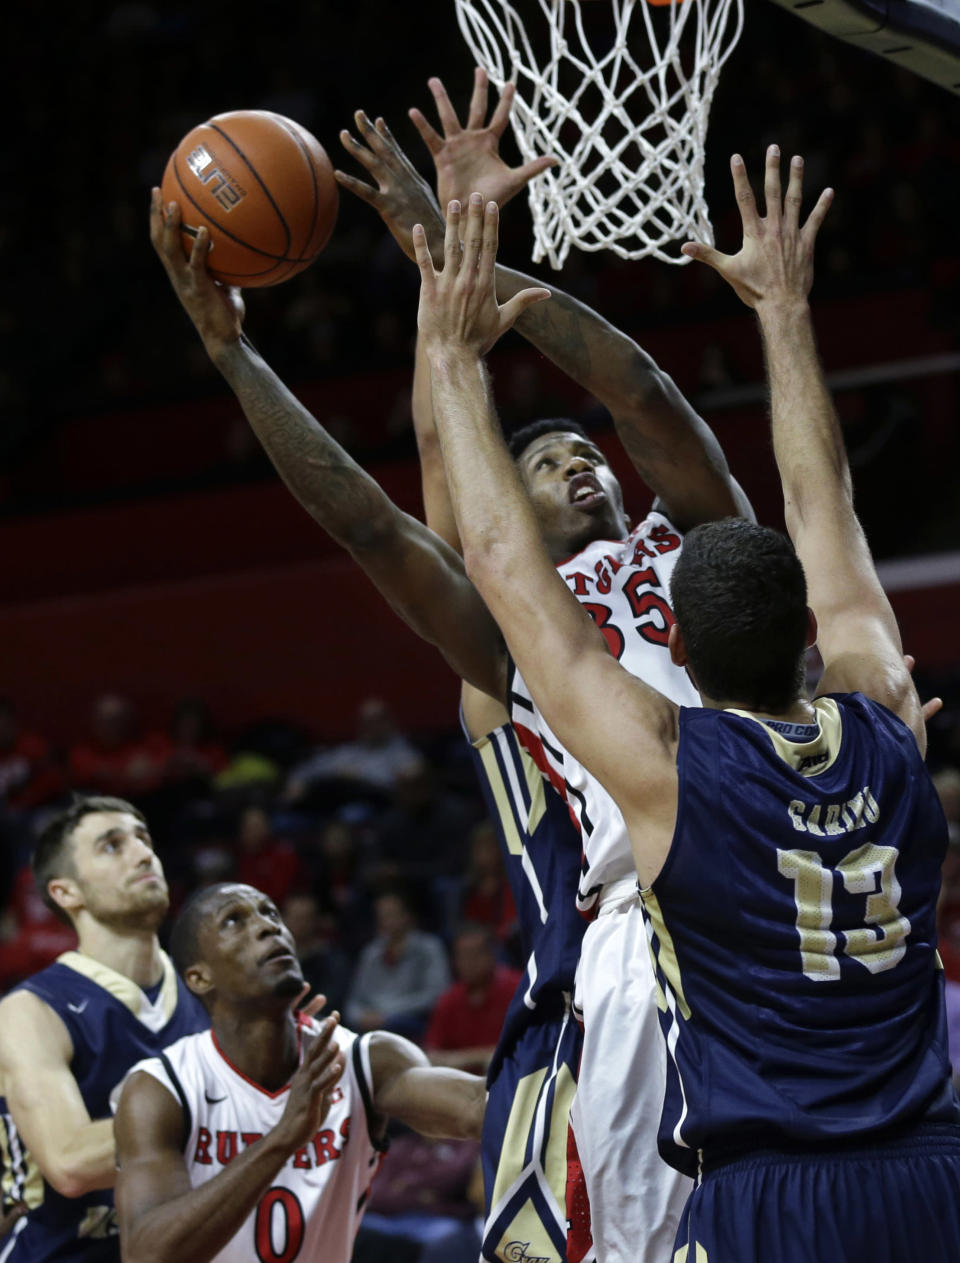 Rutgers' Greg Lewis (35) takes a shot past George Washington's Patricio Garino (13) during the first half of an NCAA college basketball game Sunday, Nov.16, 2014, in Piscataway, N.J. (AP Photo/Mel Evans)